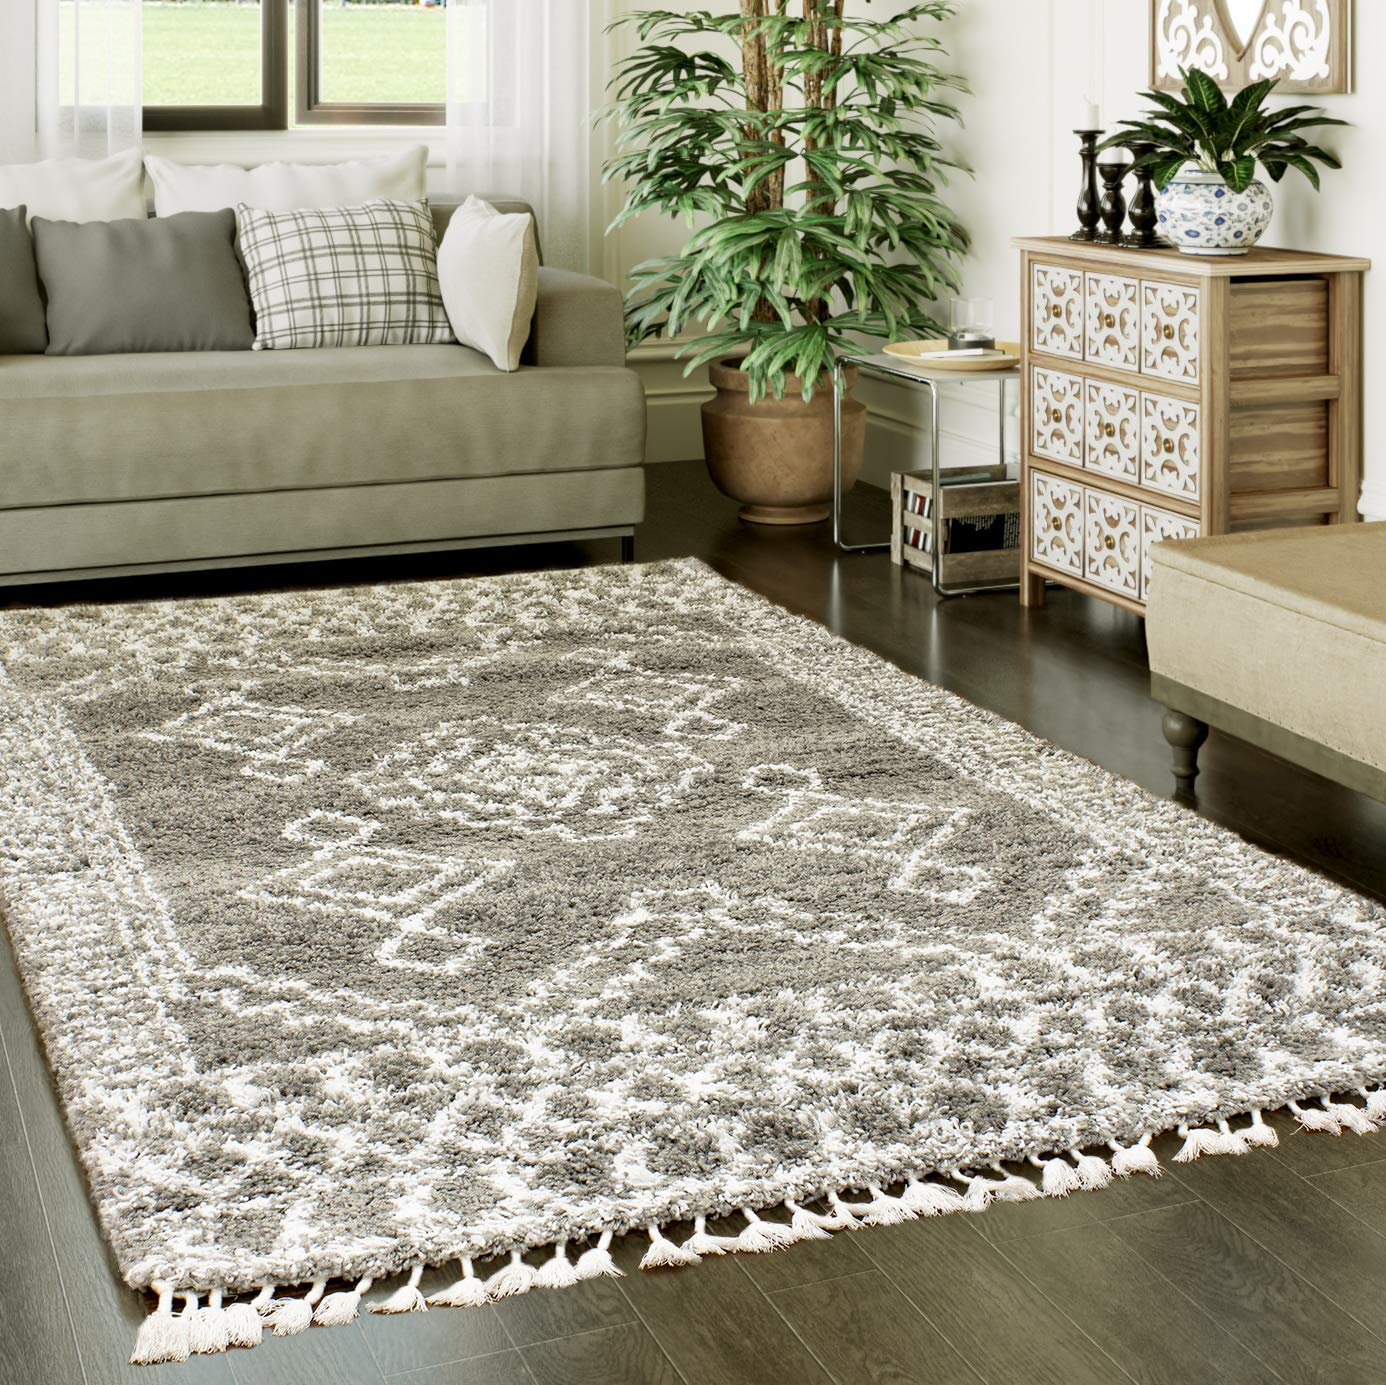 Super Area Rugs Shaggy Trellis Moroccan Rug, 3 x 5 , Gray and White Carpet with Tassels